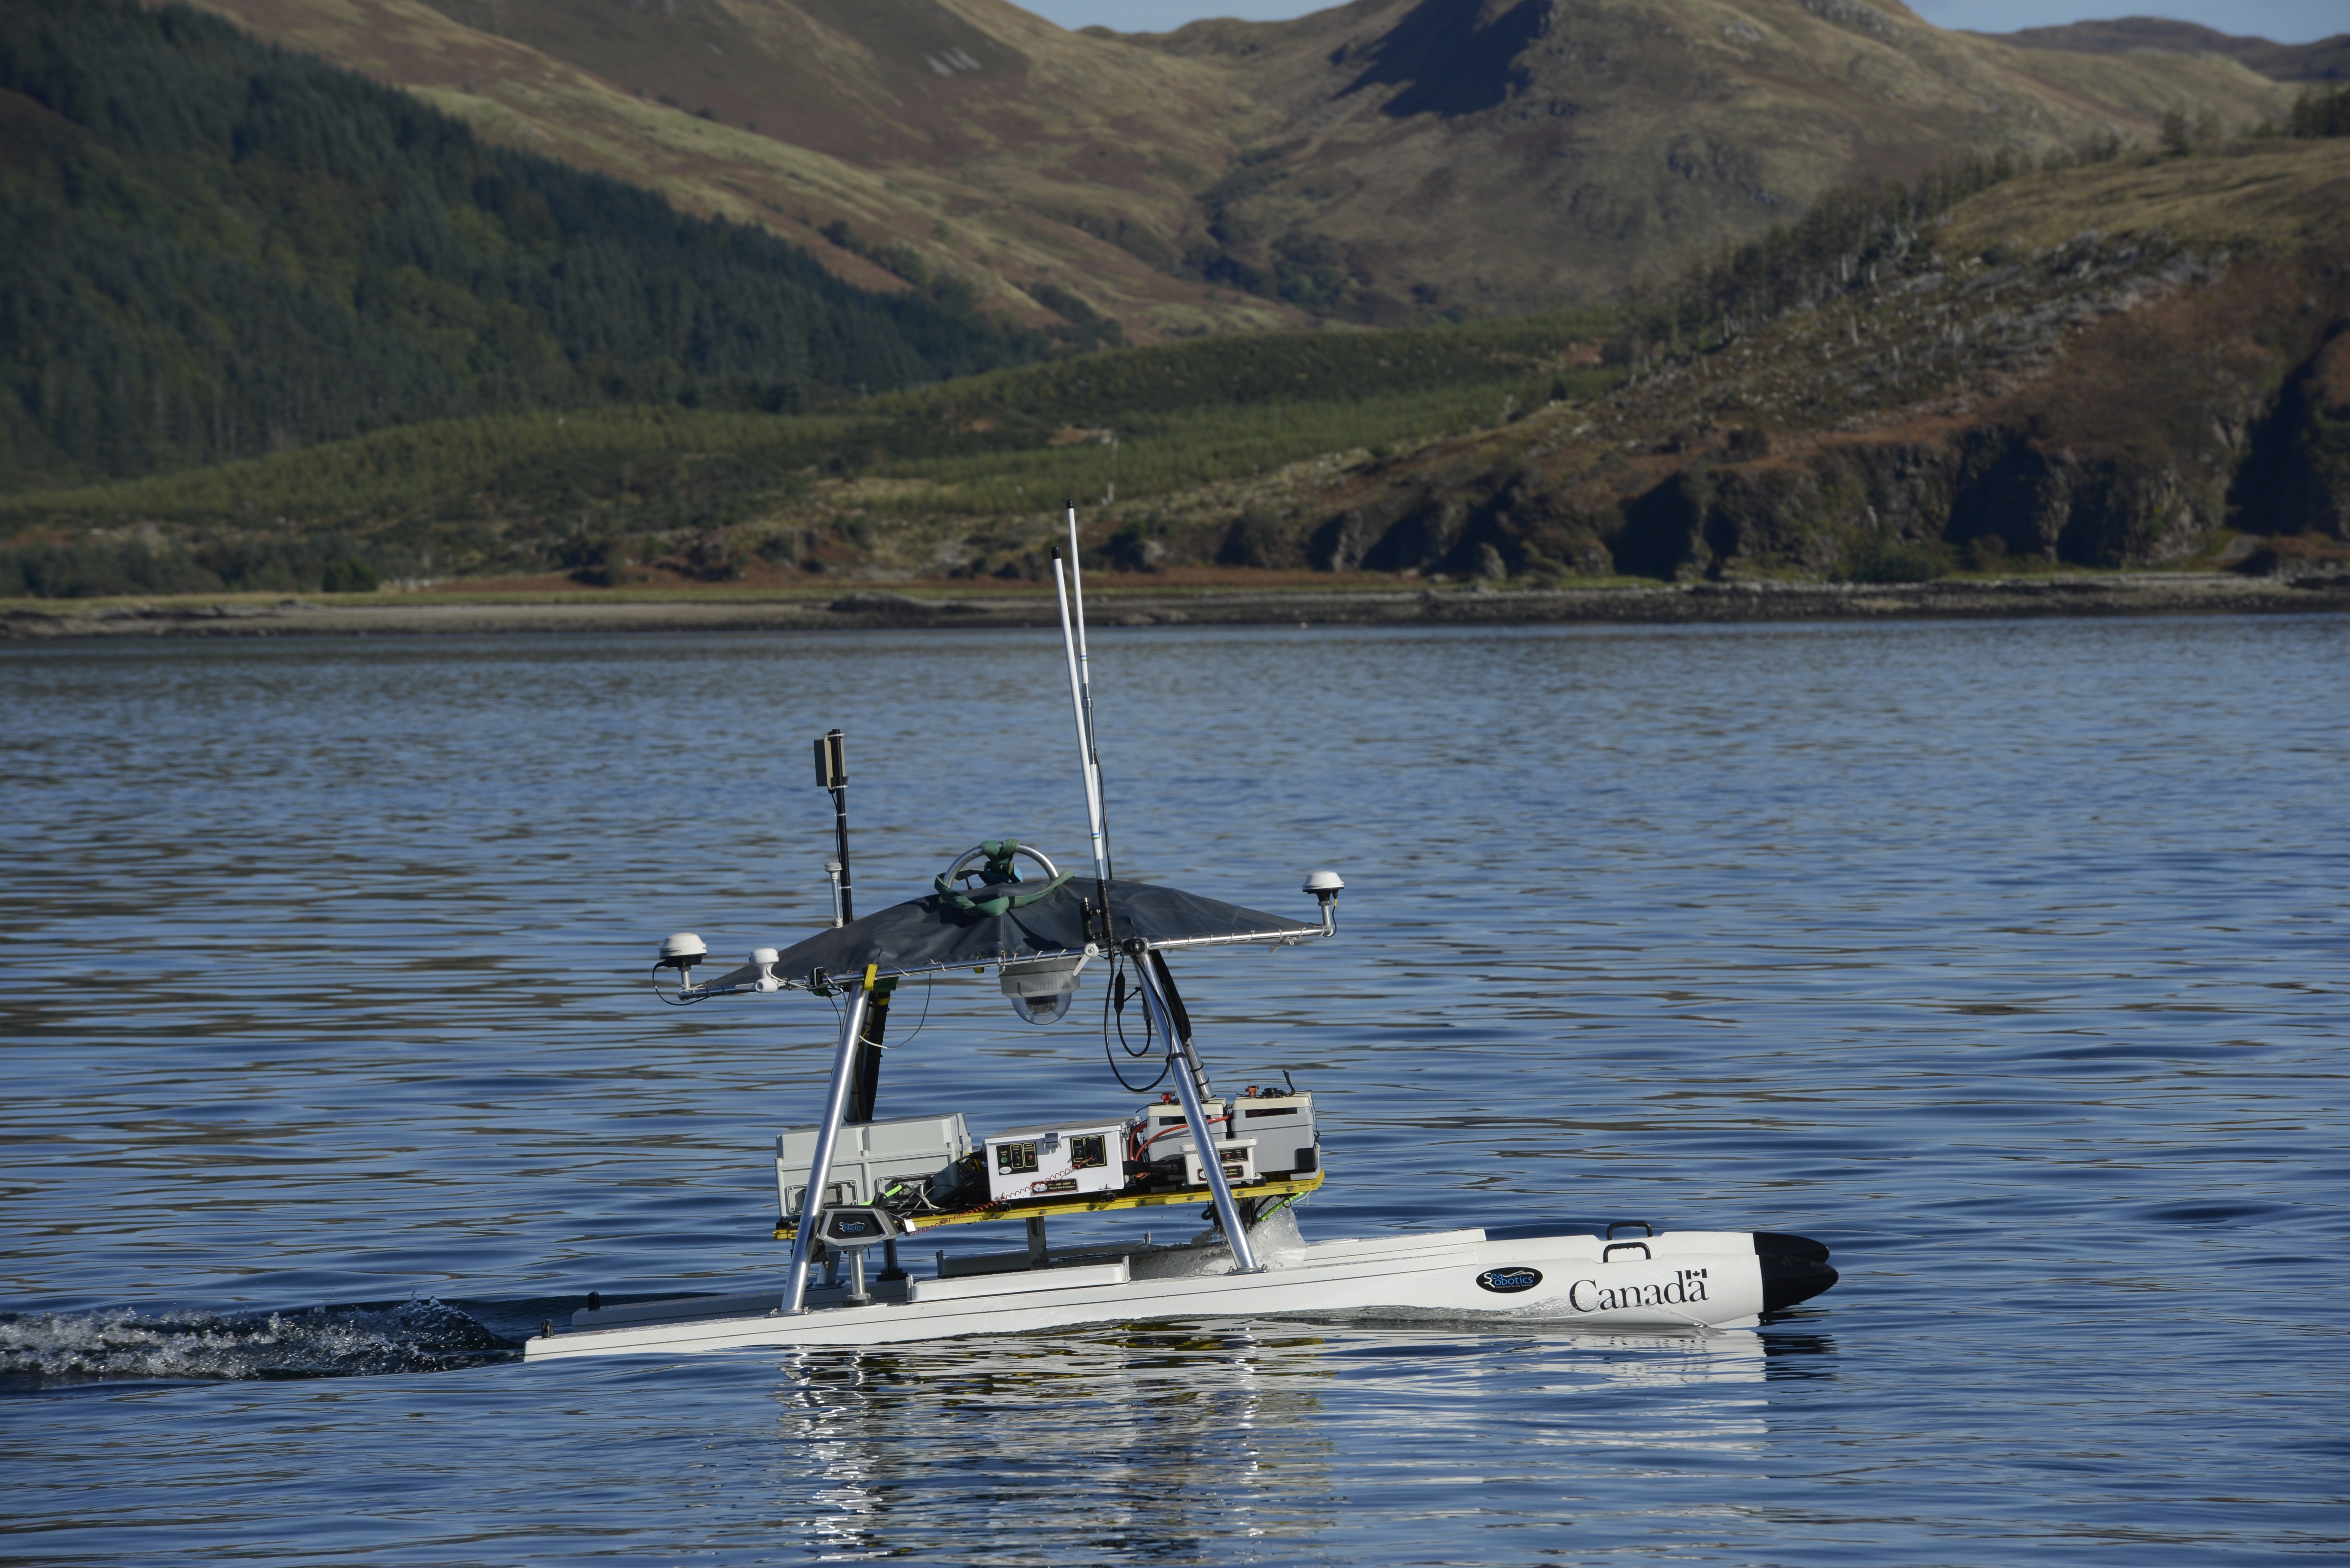 Defence Research and Development Canada's unmanned surface vehicle USV-2600 performs an autonomous mission in the water at Loch Alsh. Photo by Janice Lang, DRDC